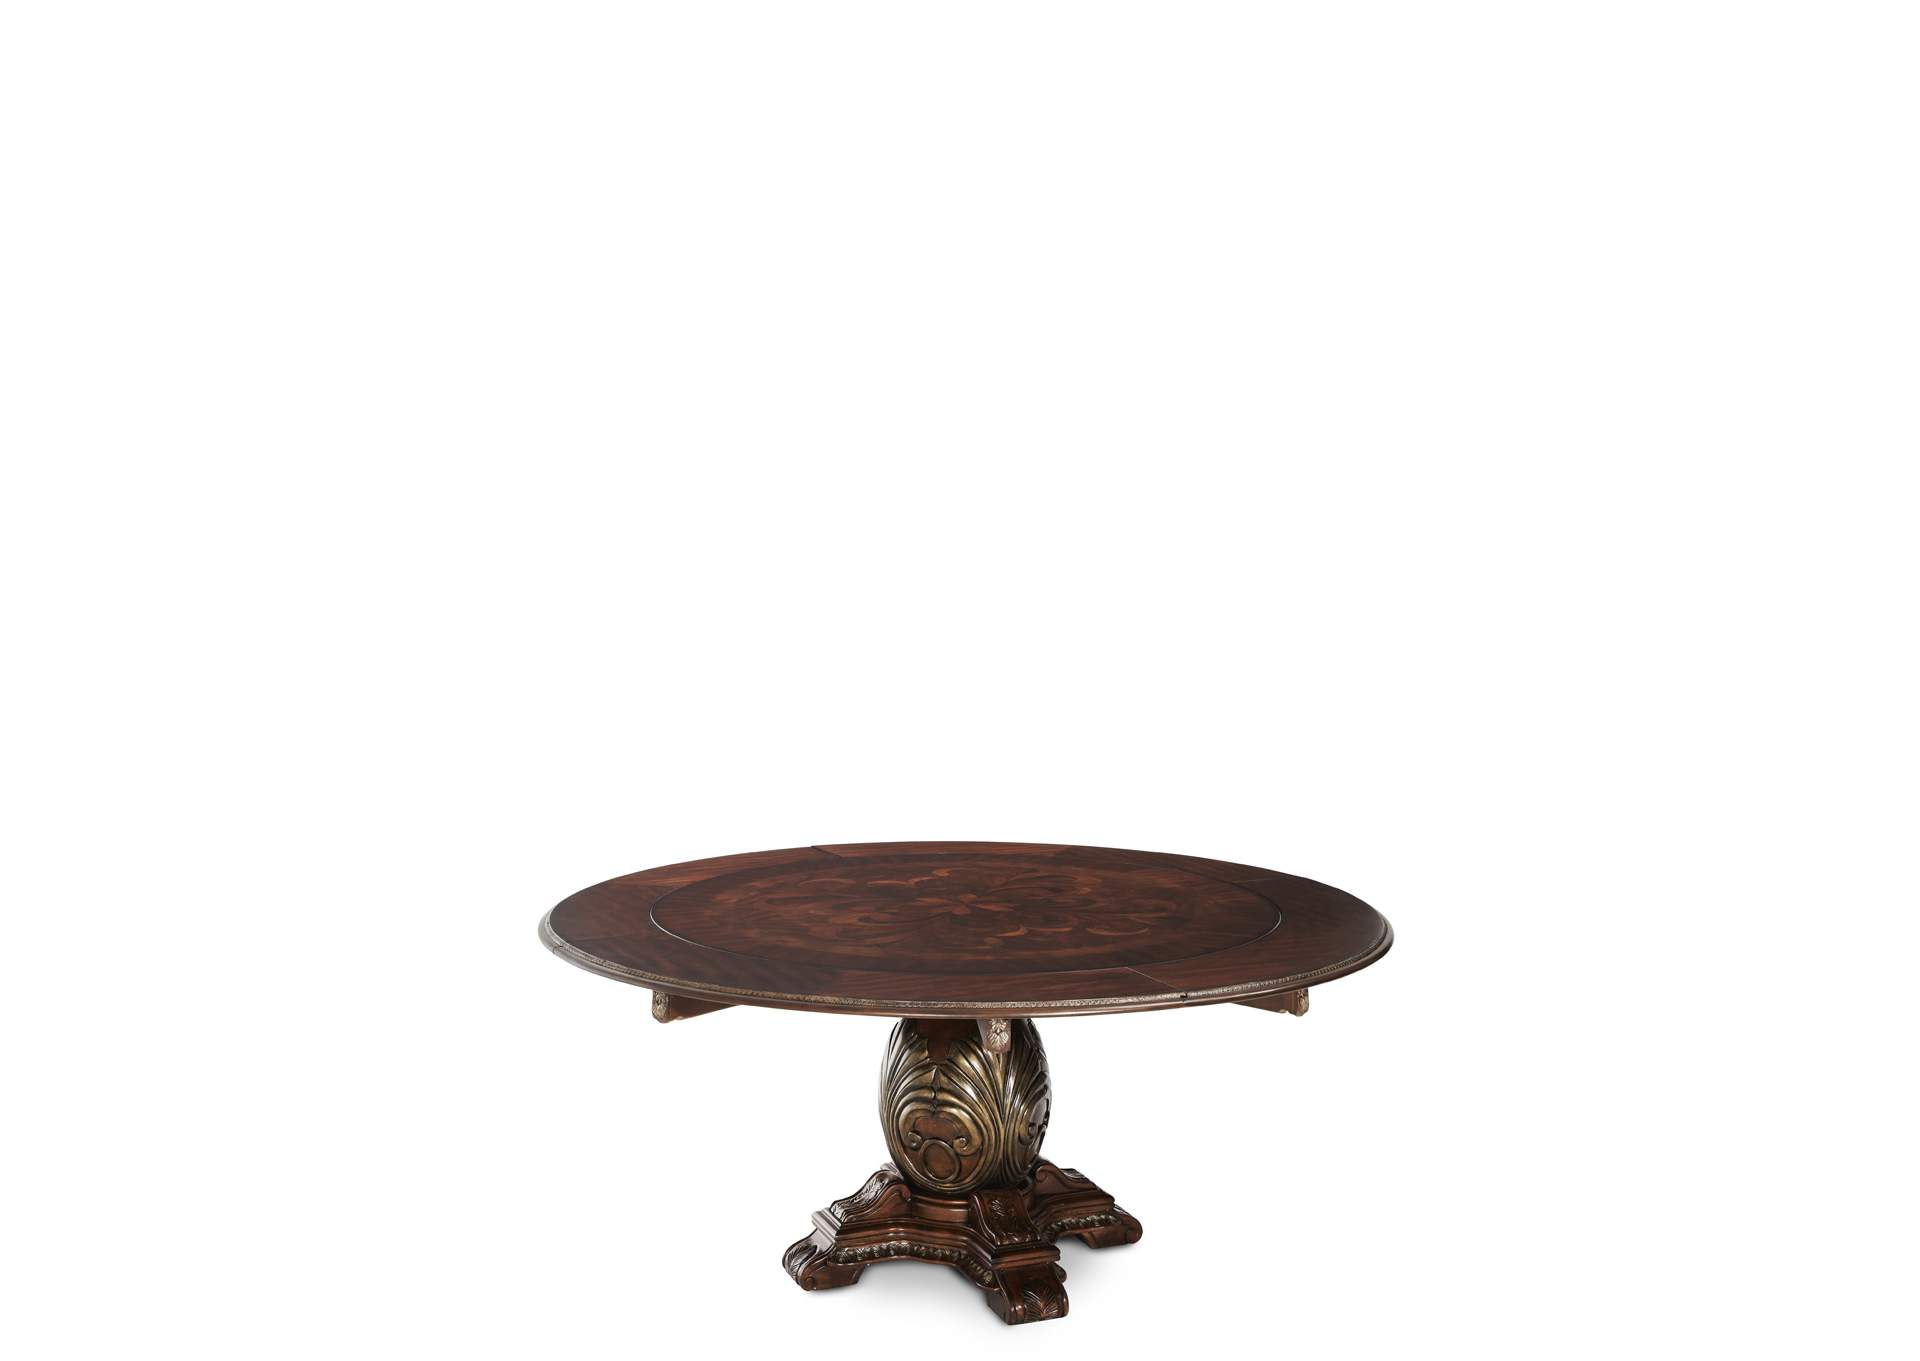 The Sovereign Soft Mink Round Dining Table w/4 x 9